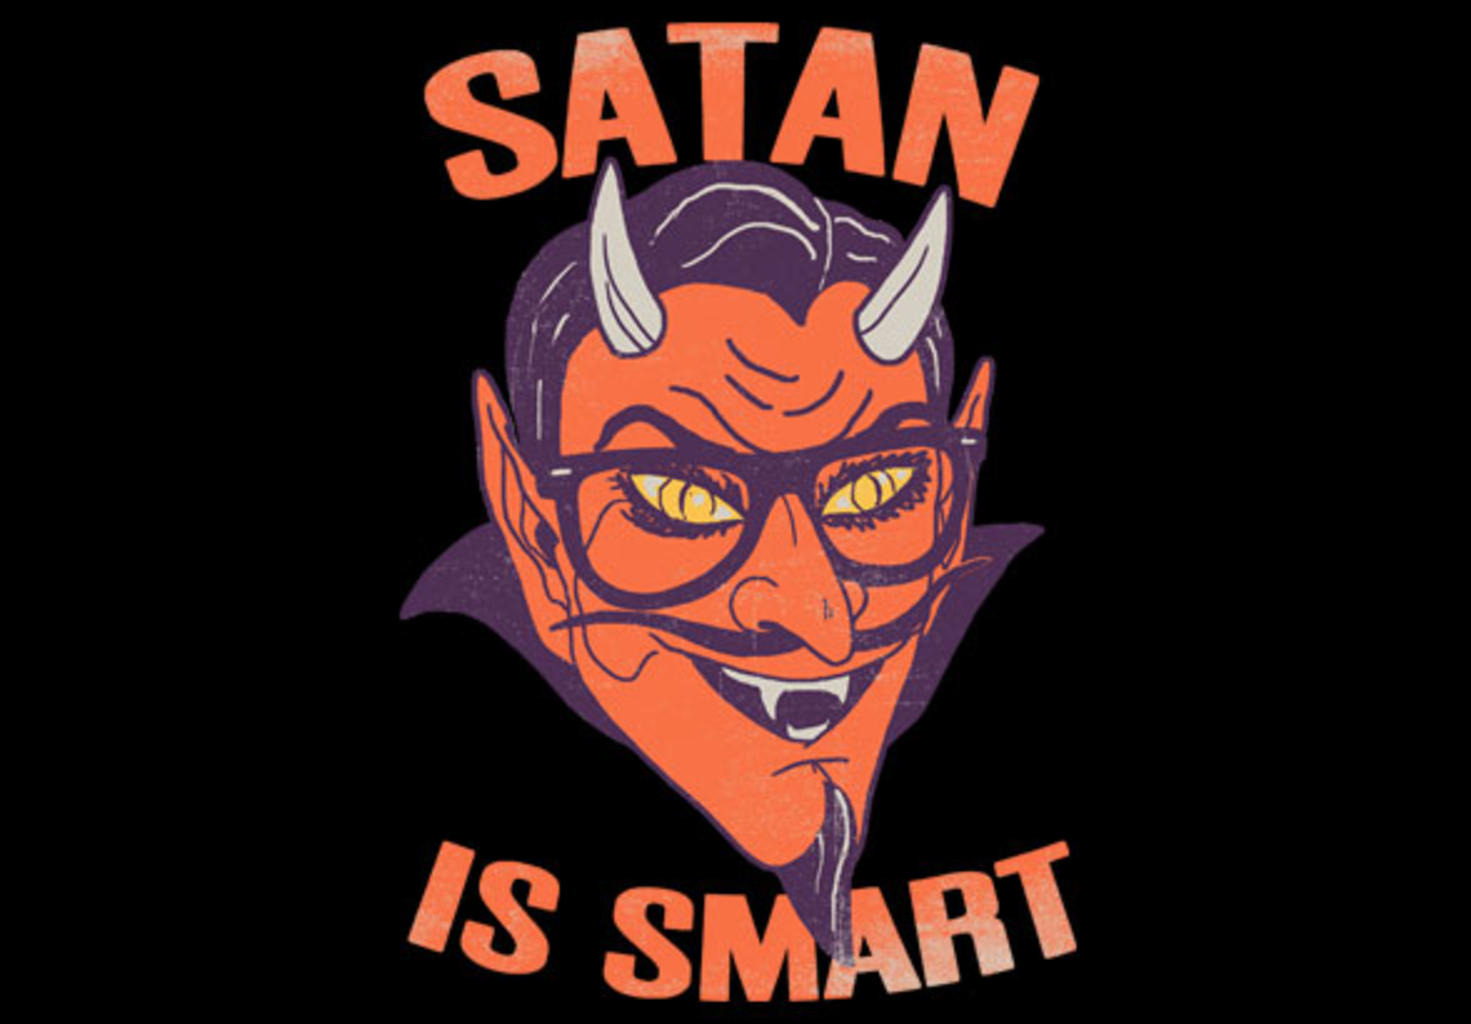 teeVillain: Satan is Smart